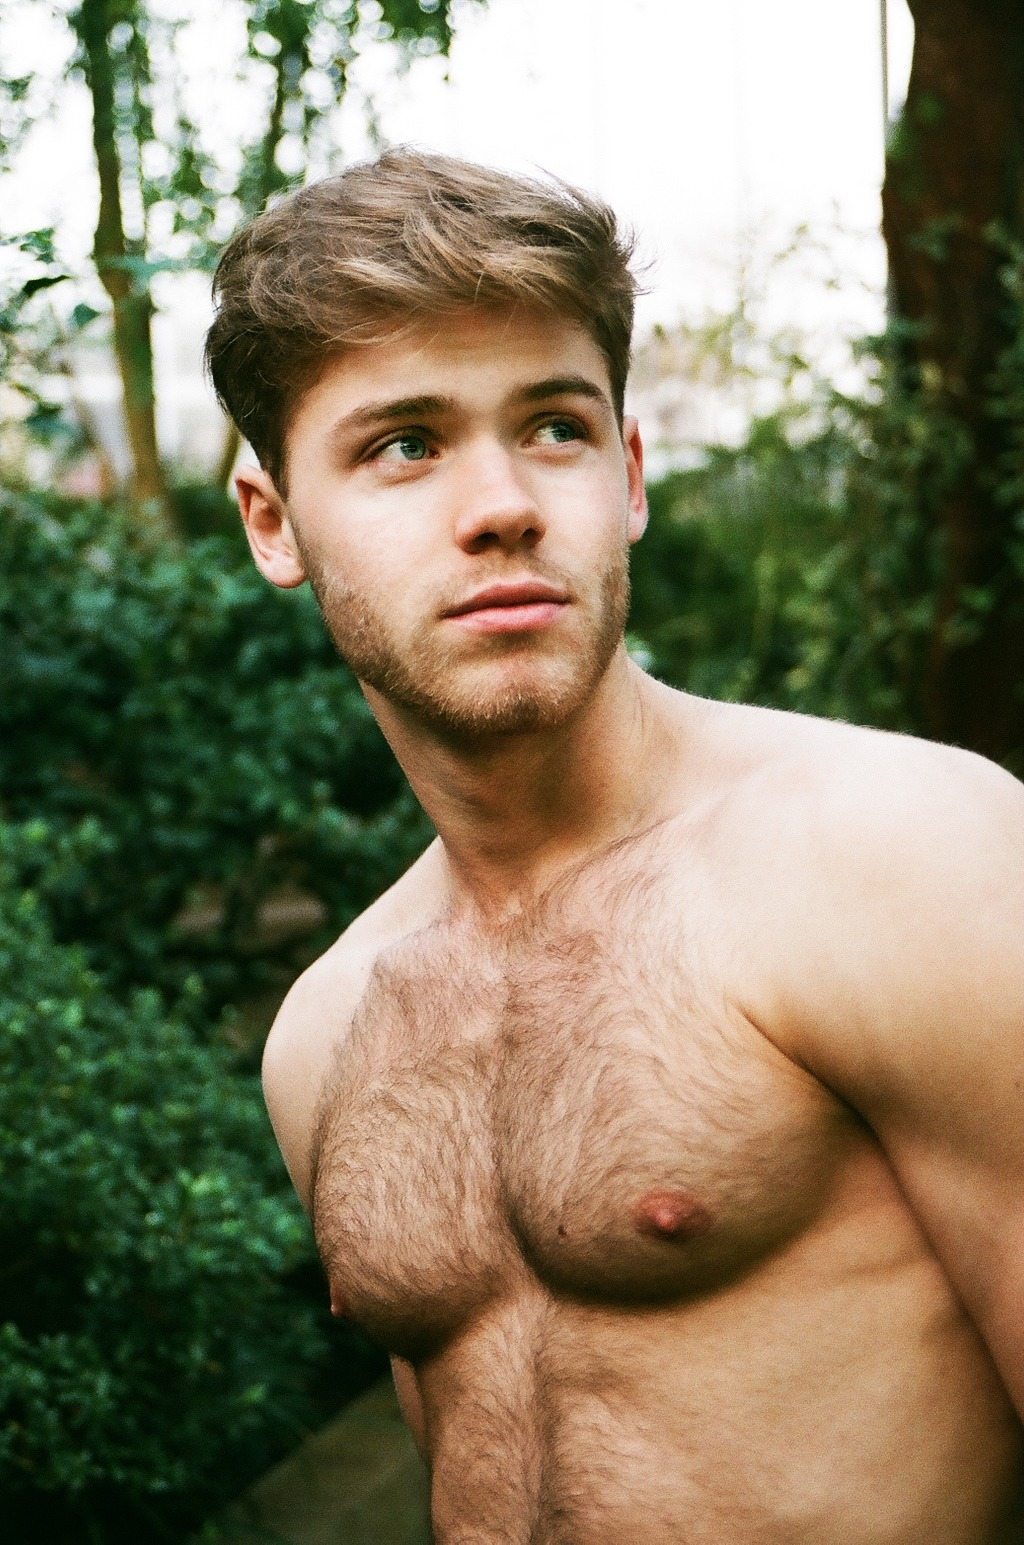 Hairy chest boy